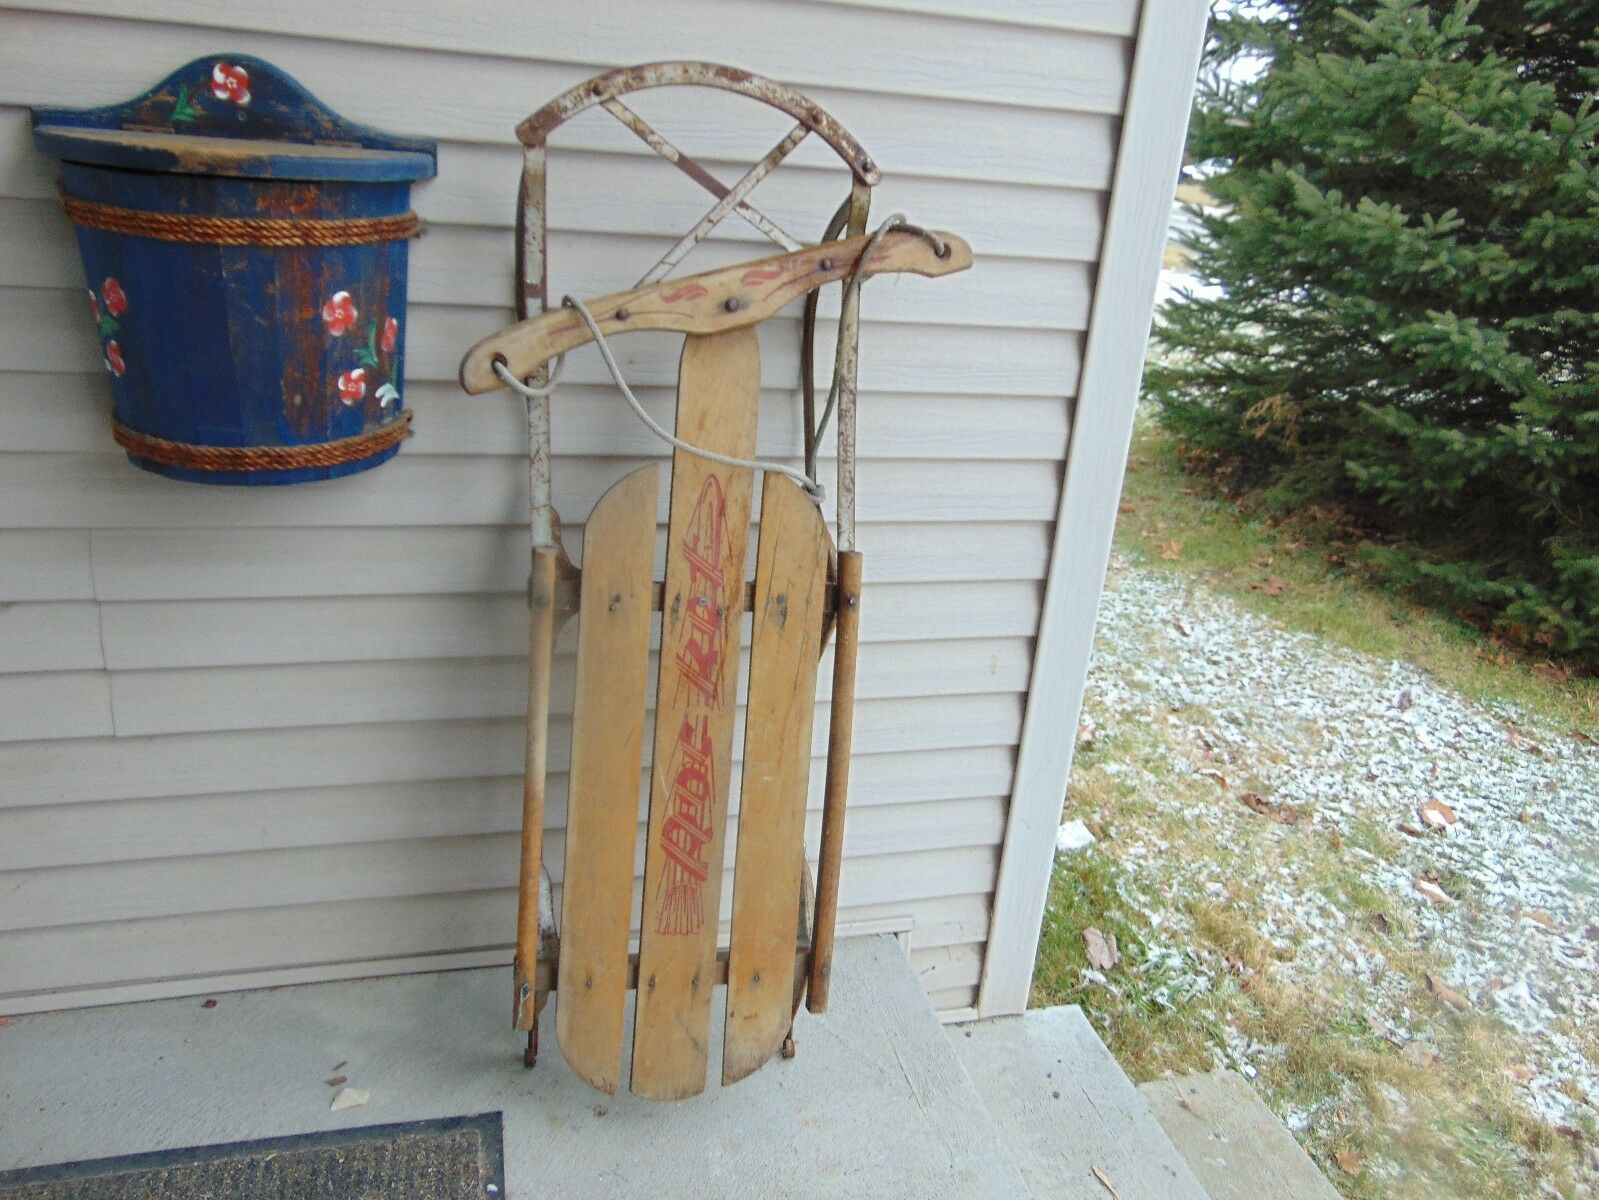 Vintage, wooden snow    sledge   41   long flexible flyer sled   nice    5268 ee9f6a